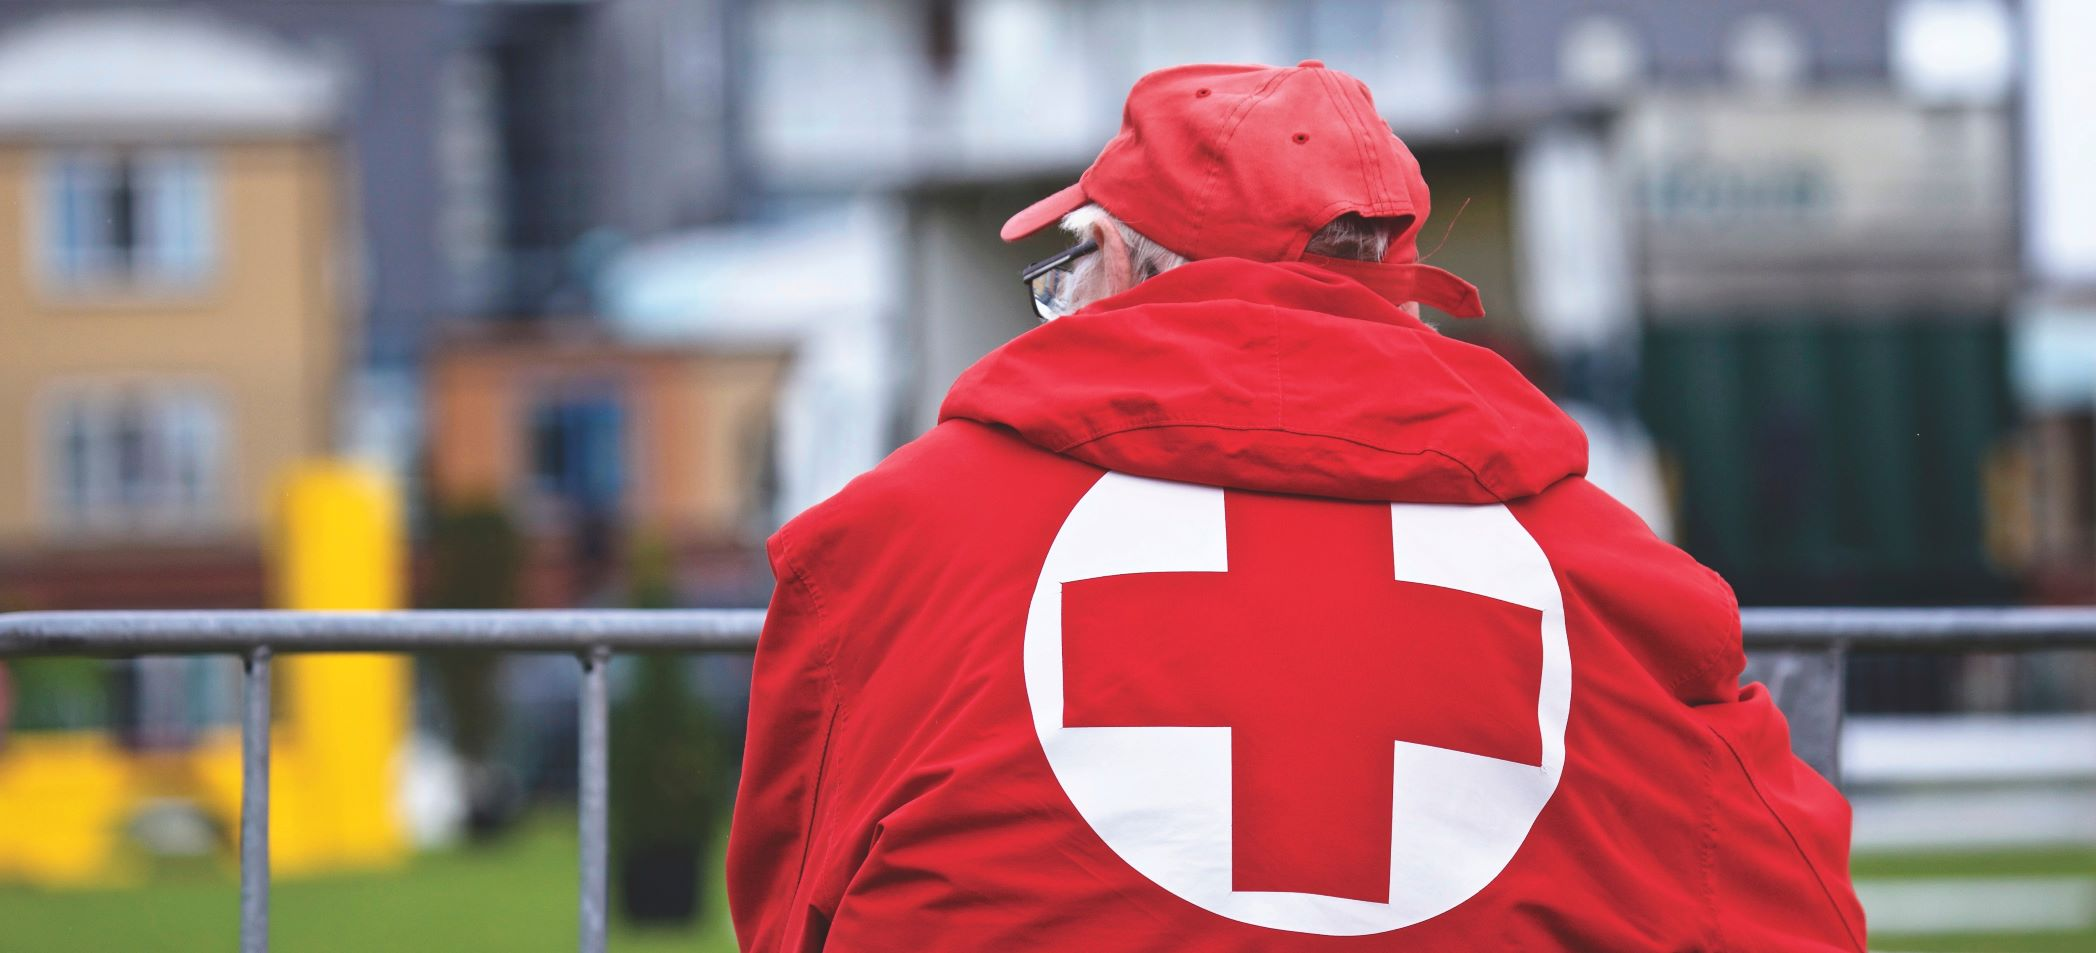 4 Facts About the Red Cross